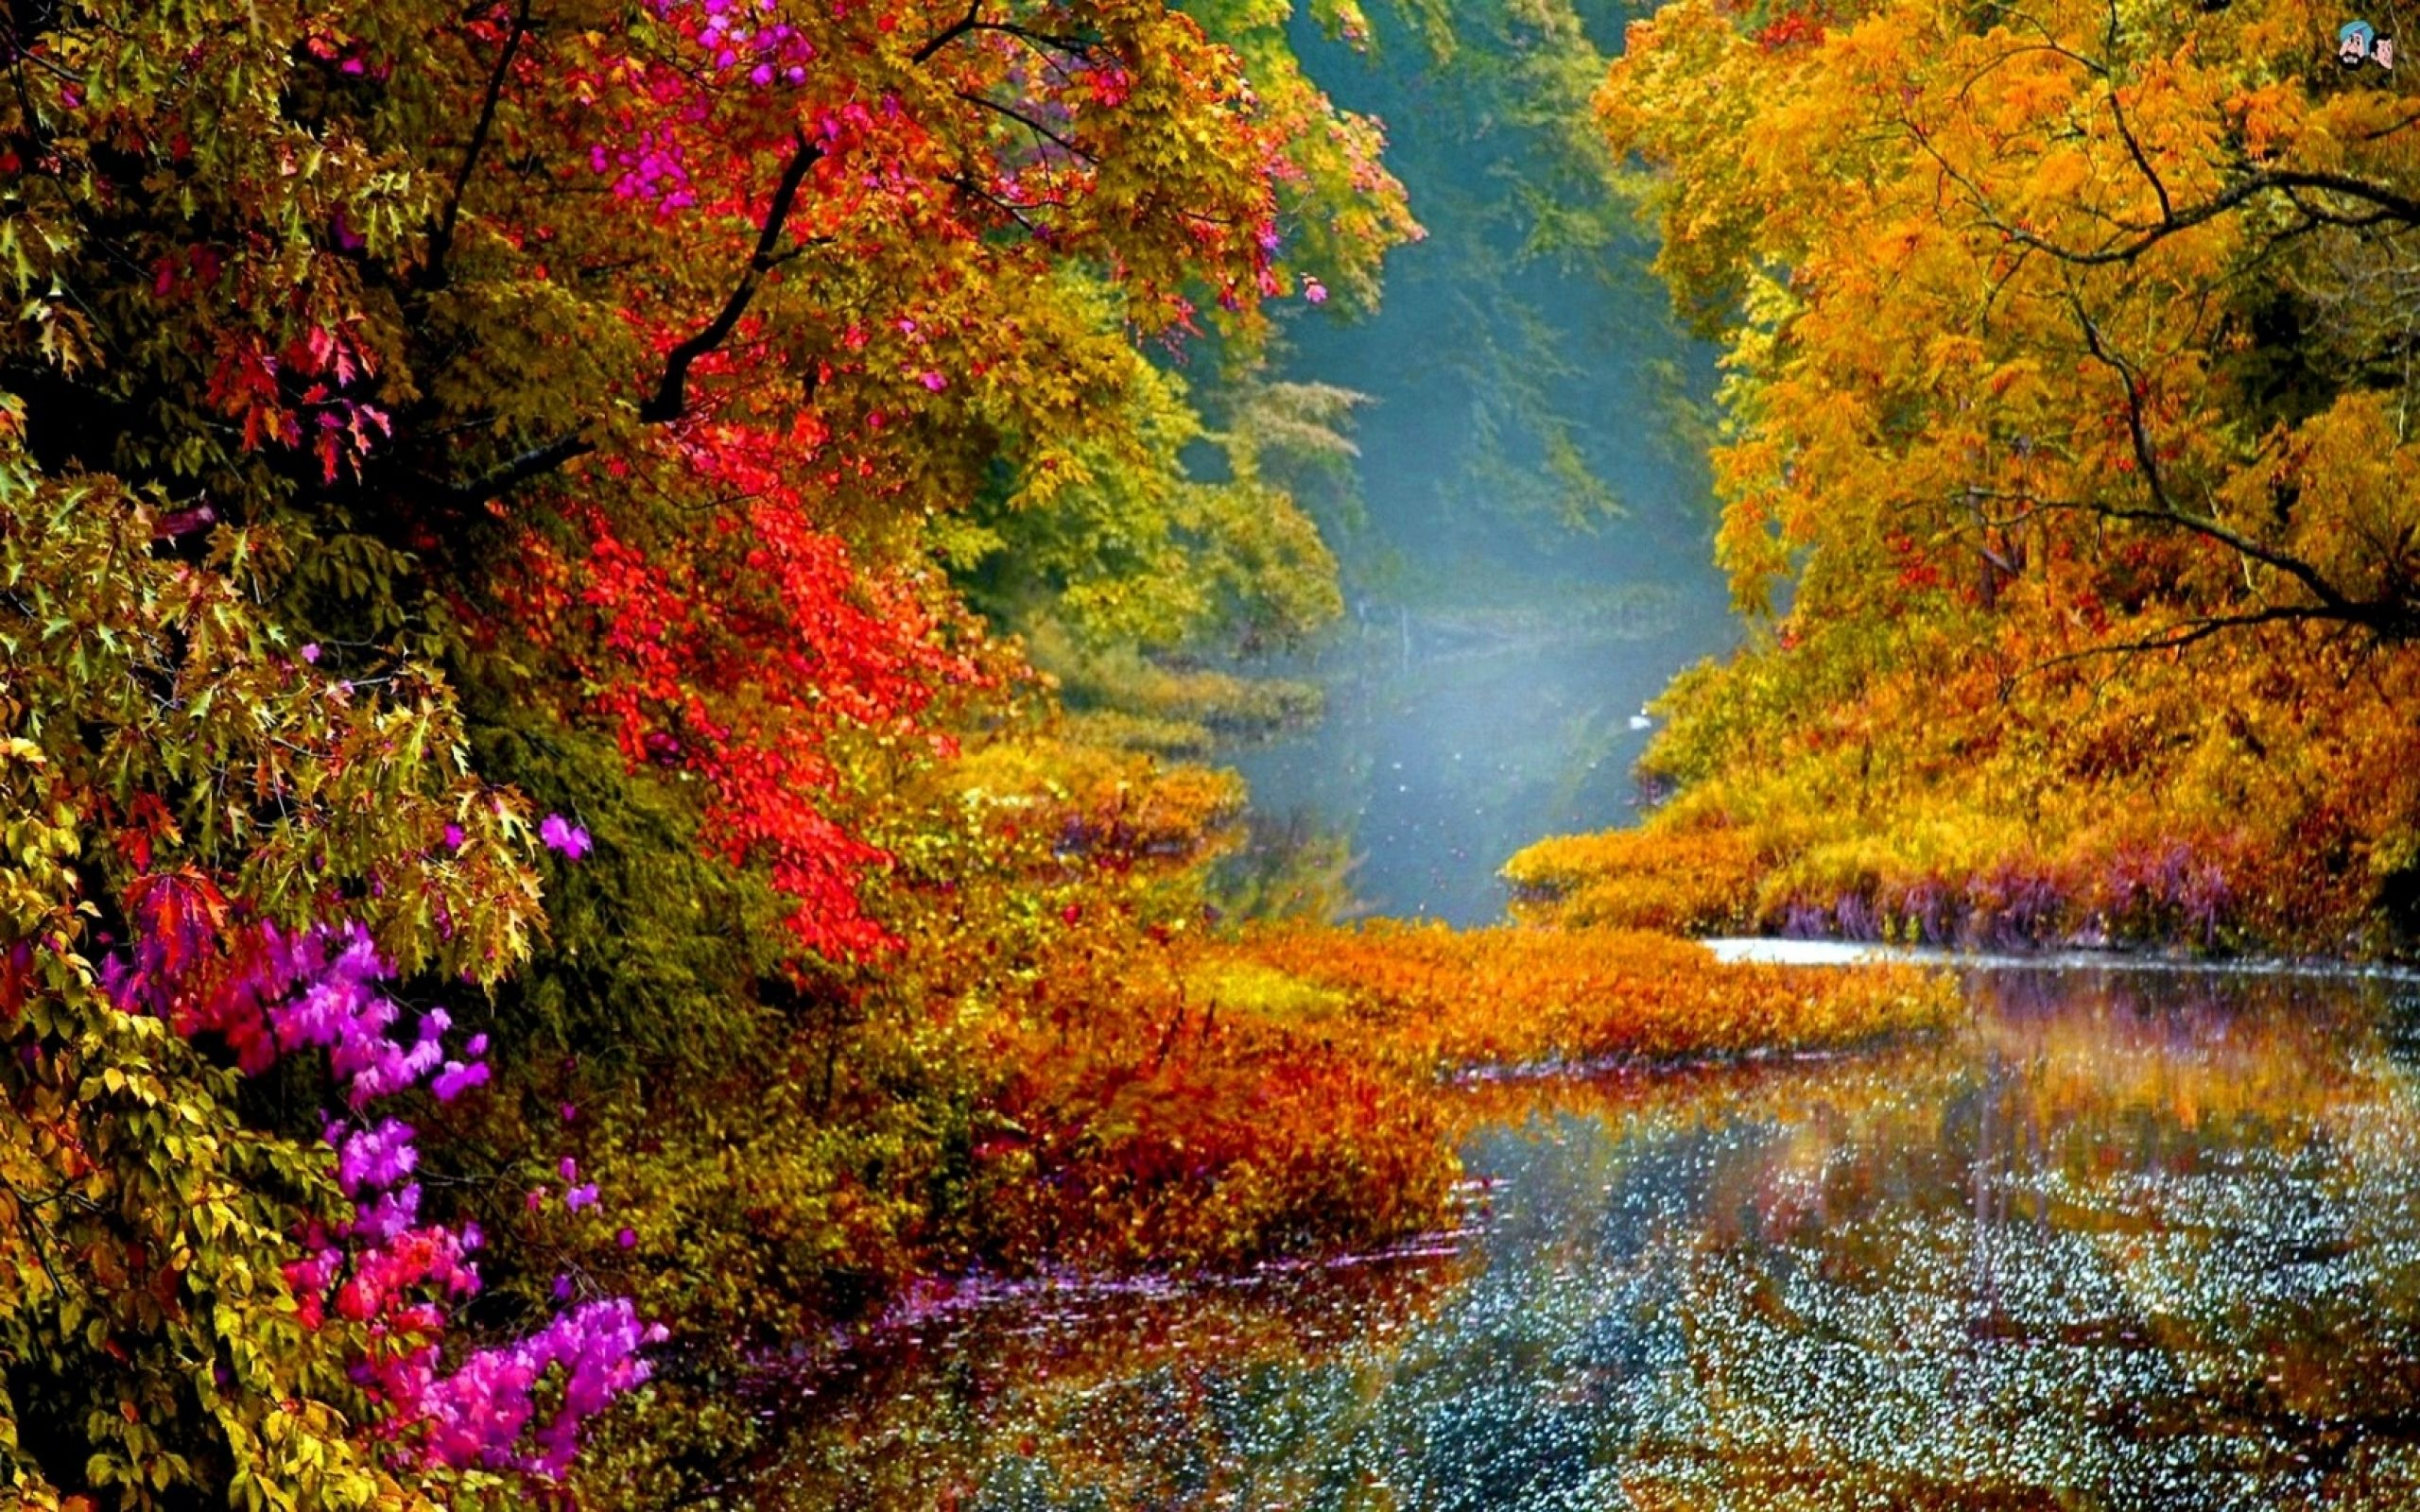 colorful scenery images   Yahoo Image Search Results Colors 2560x1600